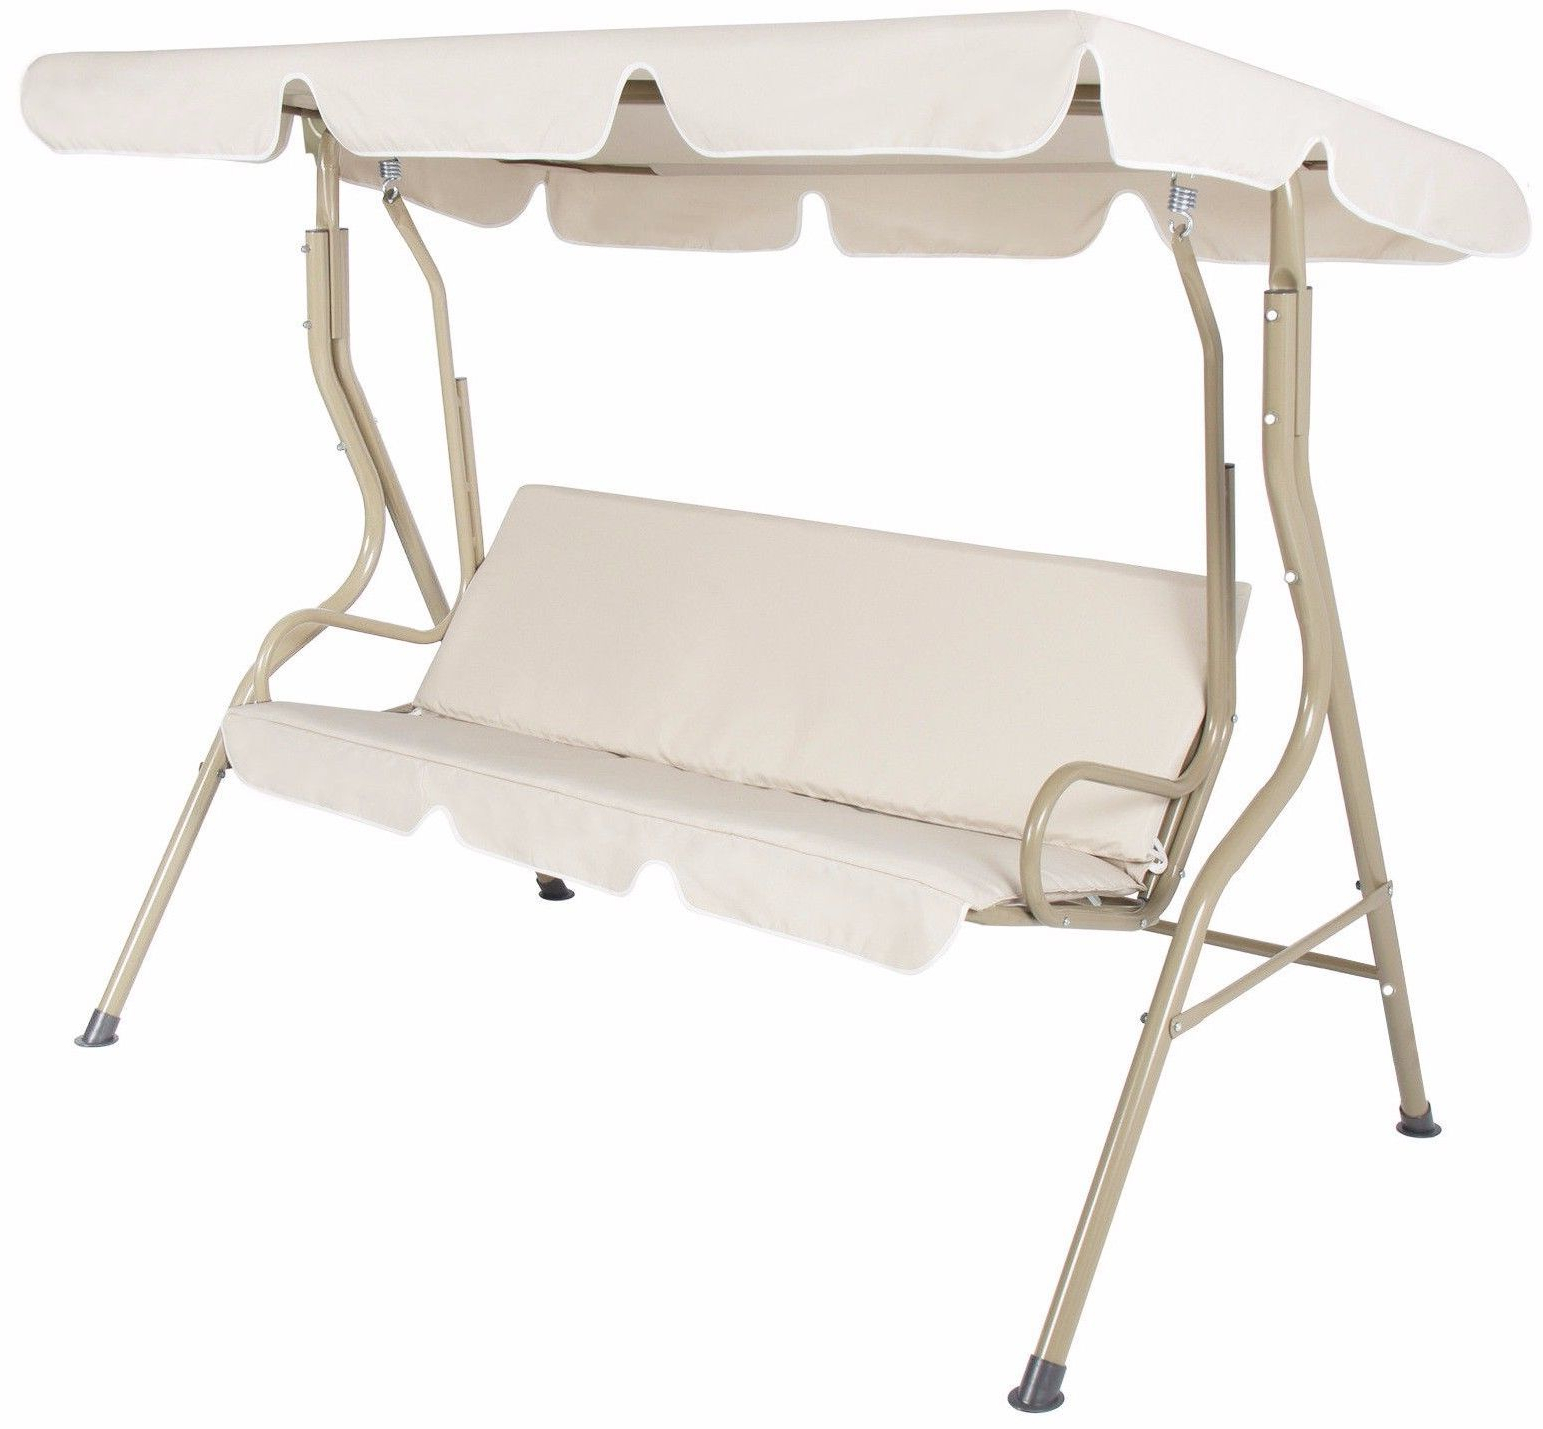 2 Person Outdoor Convertible Canopy Swing Gliders With Removable Cushions Beige Within Newest Outdoor 2 Person Canopy Swing Glider Hammock Patio Furniture (View 12 of 30)